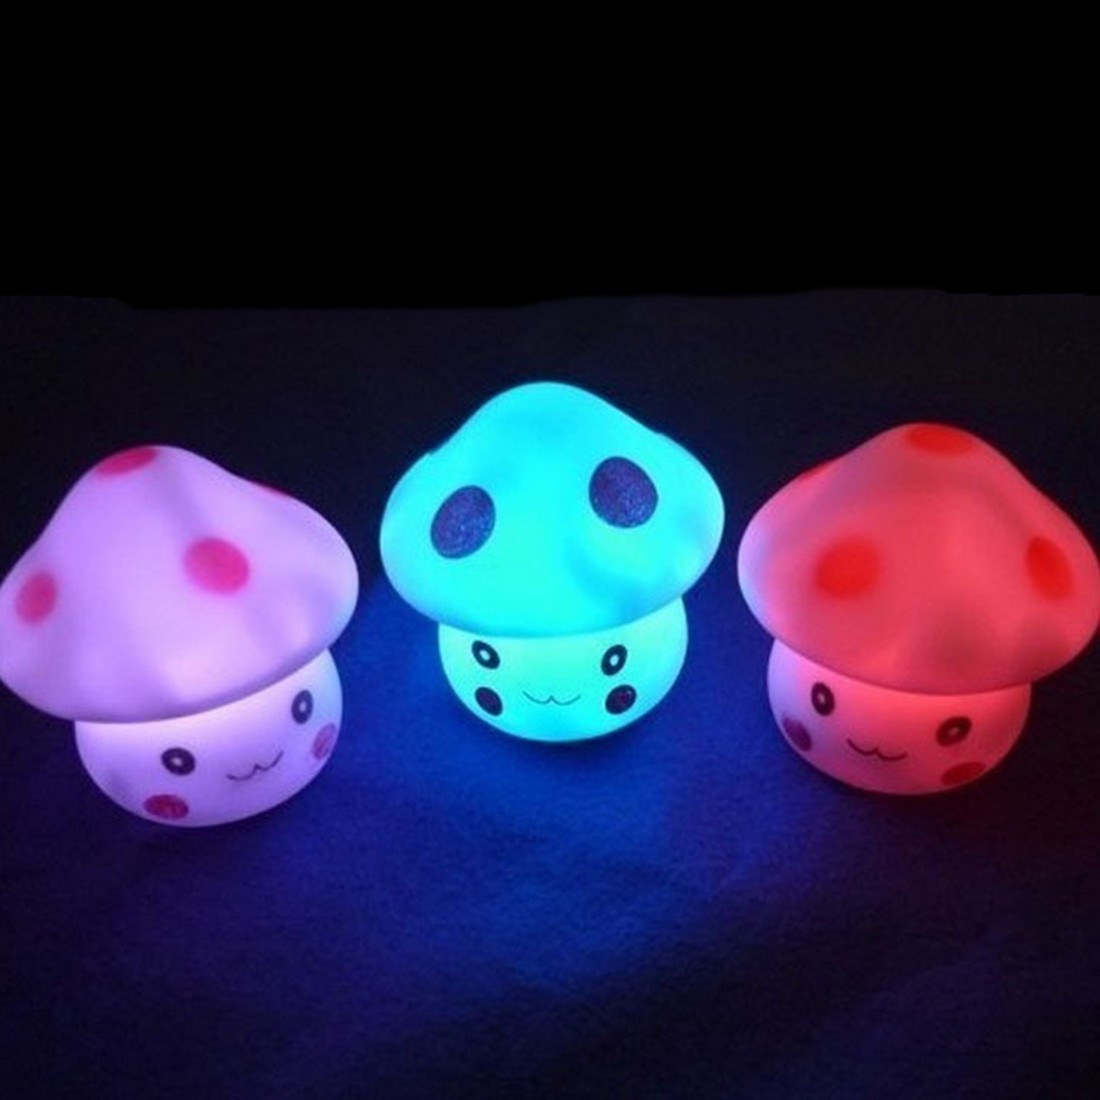 LED Night Light Colorful Mushroom Press Down Touch Room Desk Bedside Lamp for Baby Kids Christmas Gifts